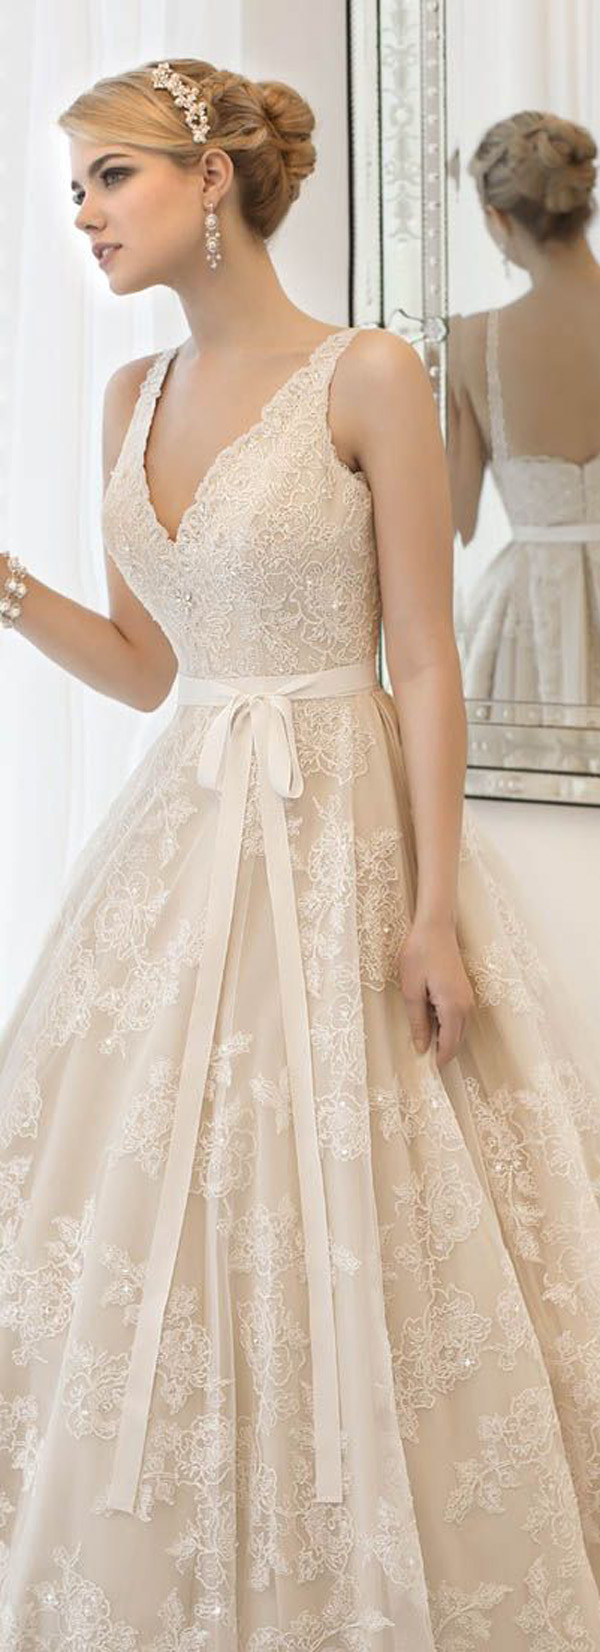 Top 20 vintage wedding dresses for 2016 brides for Modern vintage lace wedding dress